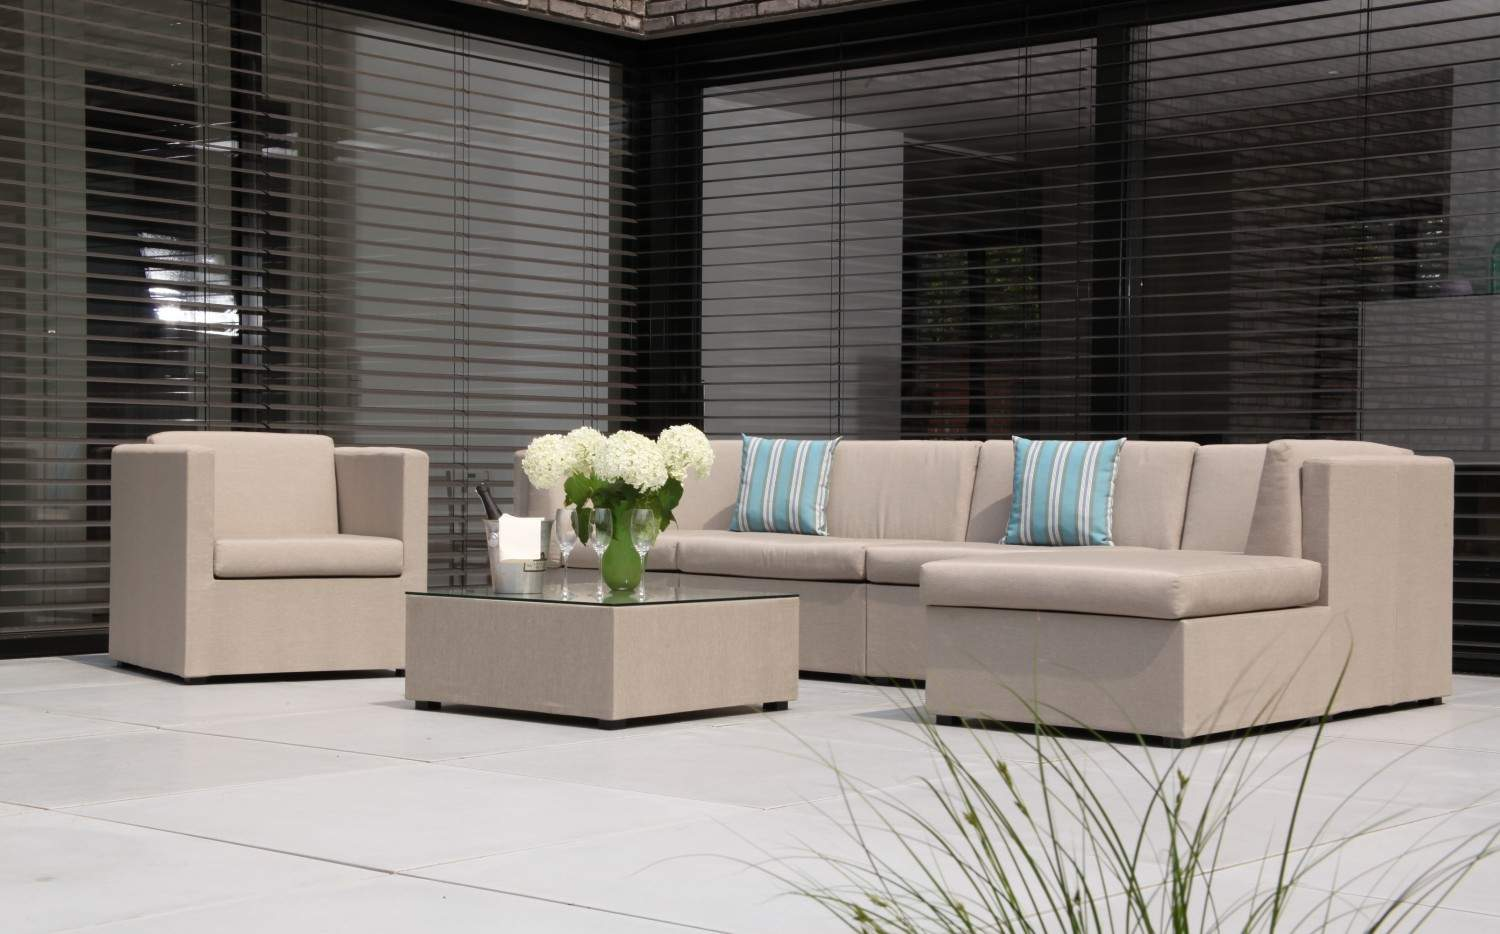 SA Siena Garden Loungeset Riverton 6 4